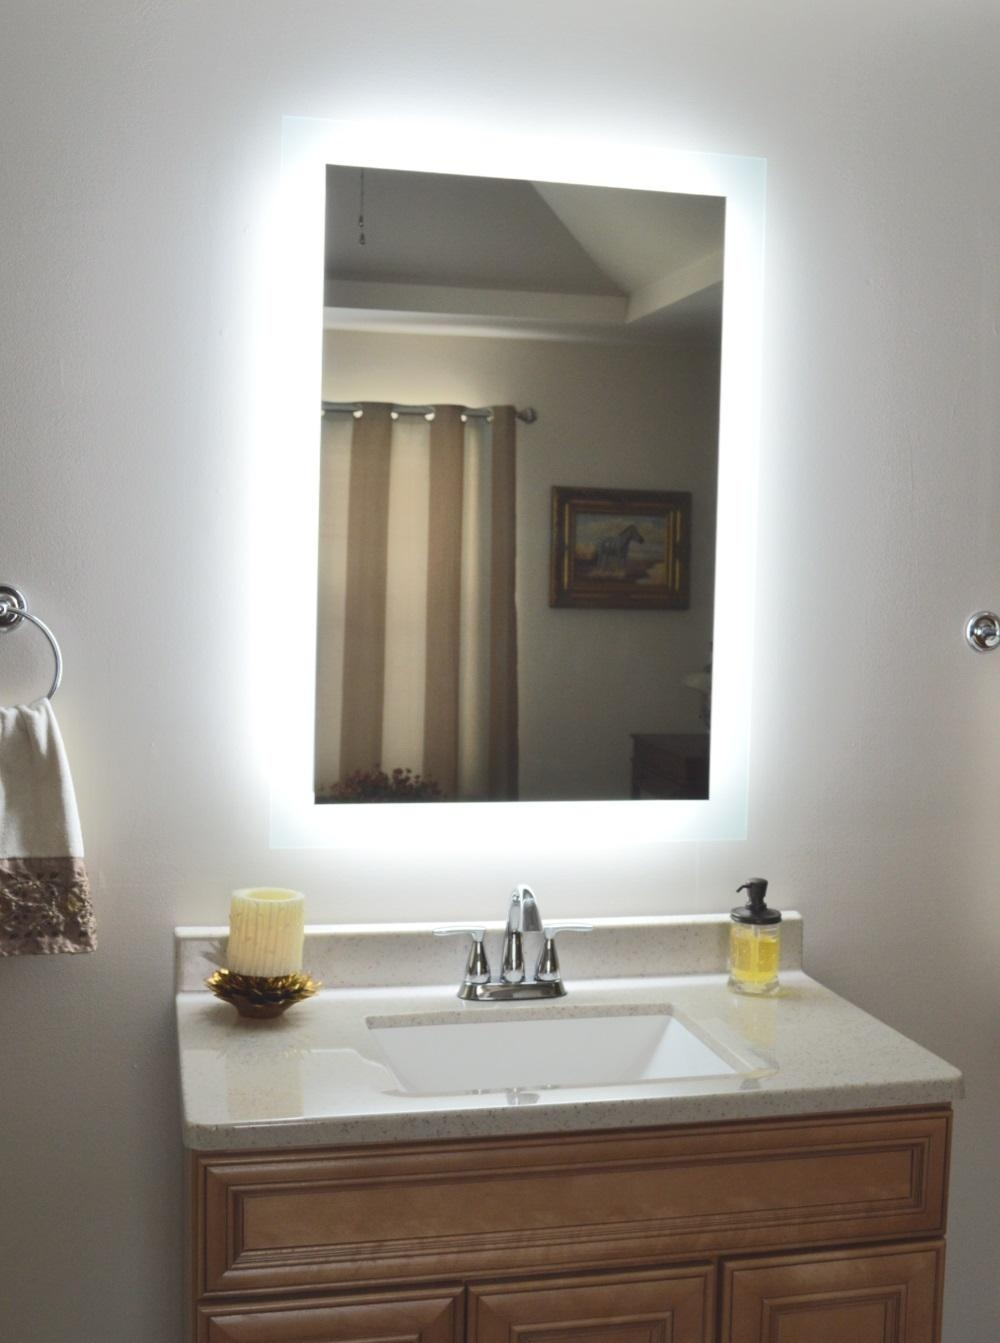 Lighted Vanity Mirror Throughout Lighted Vanity Mirrors For Bathroom (Image 15 of 20)